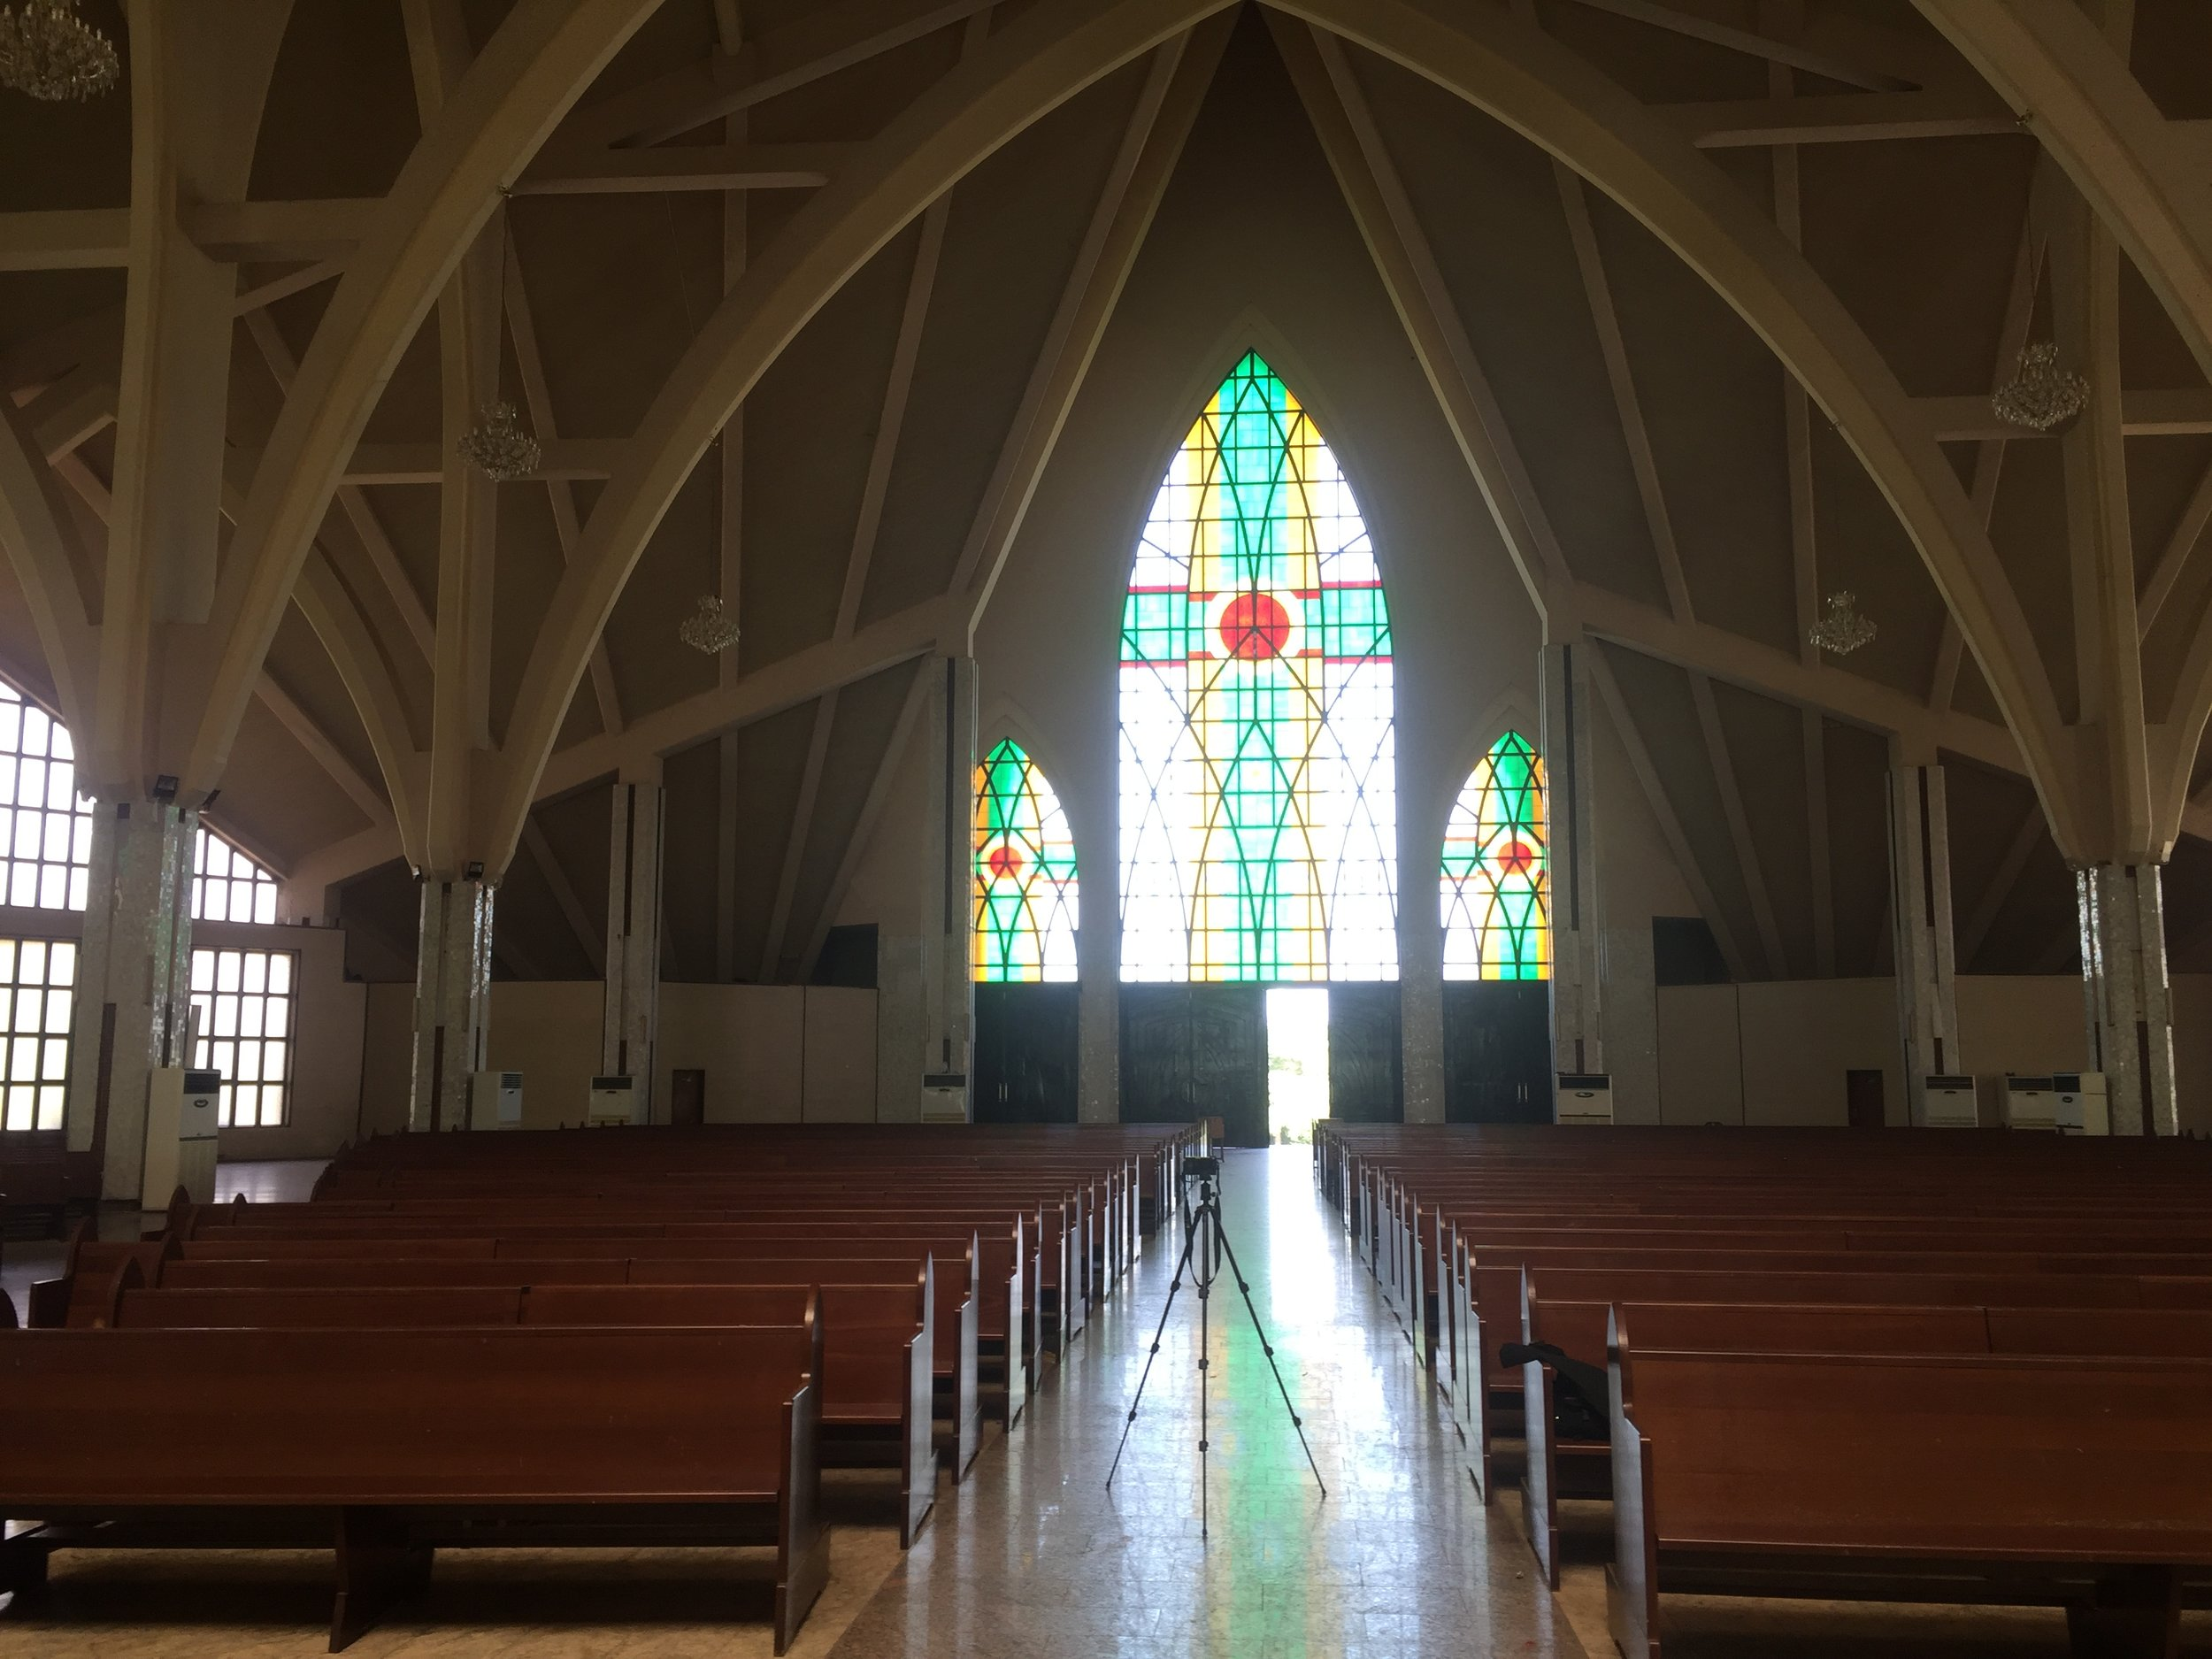 A complete view of the church with the stained glass windows mixing the colors green, red, and yellow to create a beautiful scene with natural light penetration.